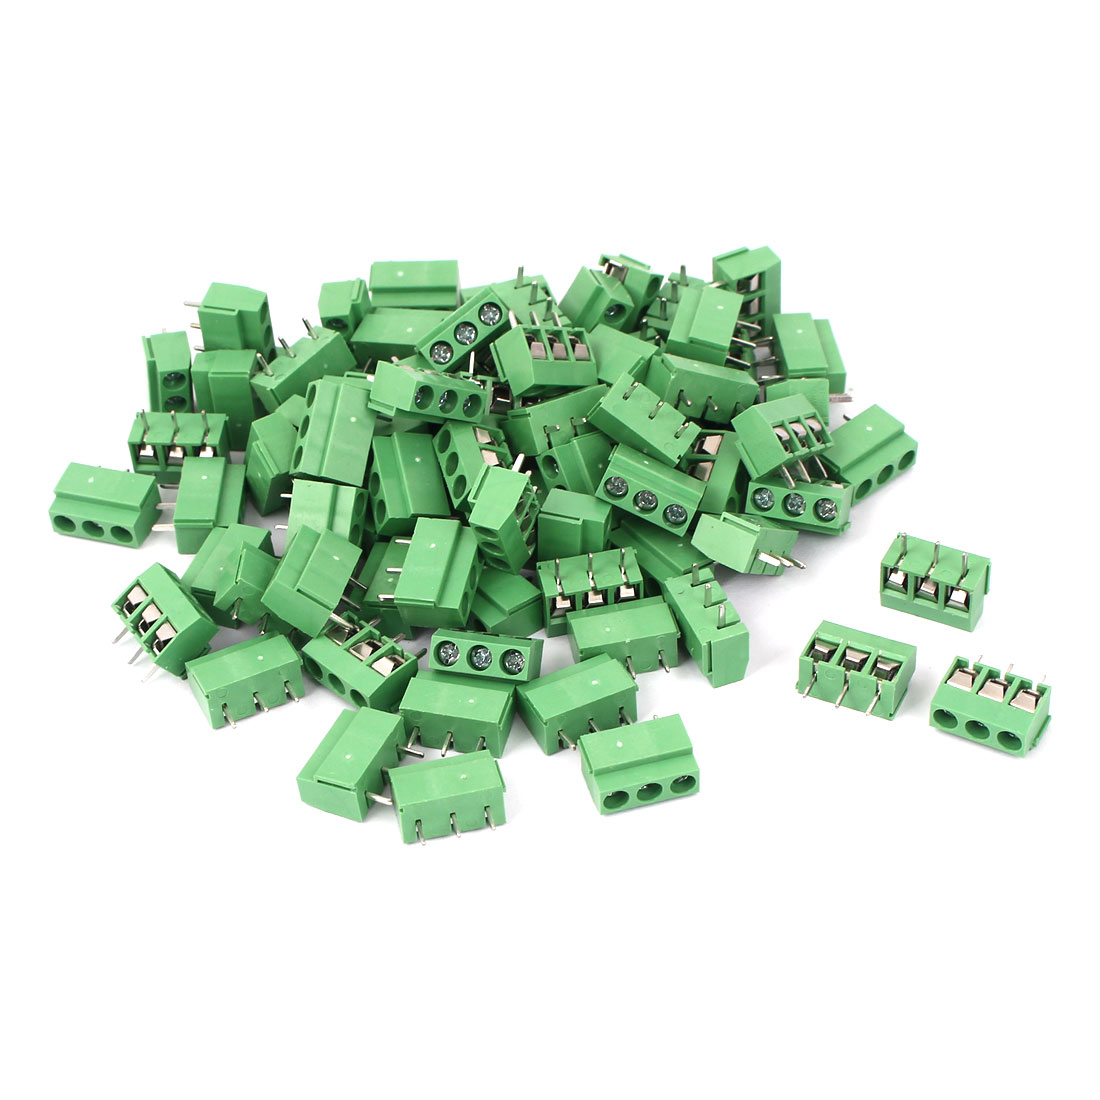 80Pcs 5.08mm Pitch 3 way Straight Terminal PCB Screw Terminal Block Connector